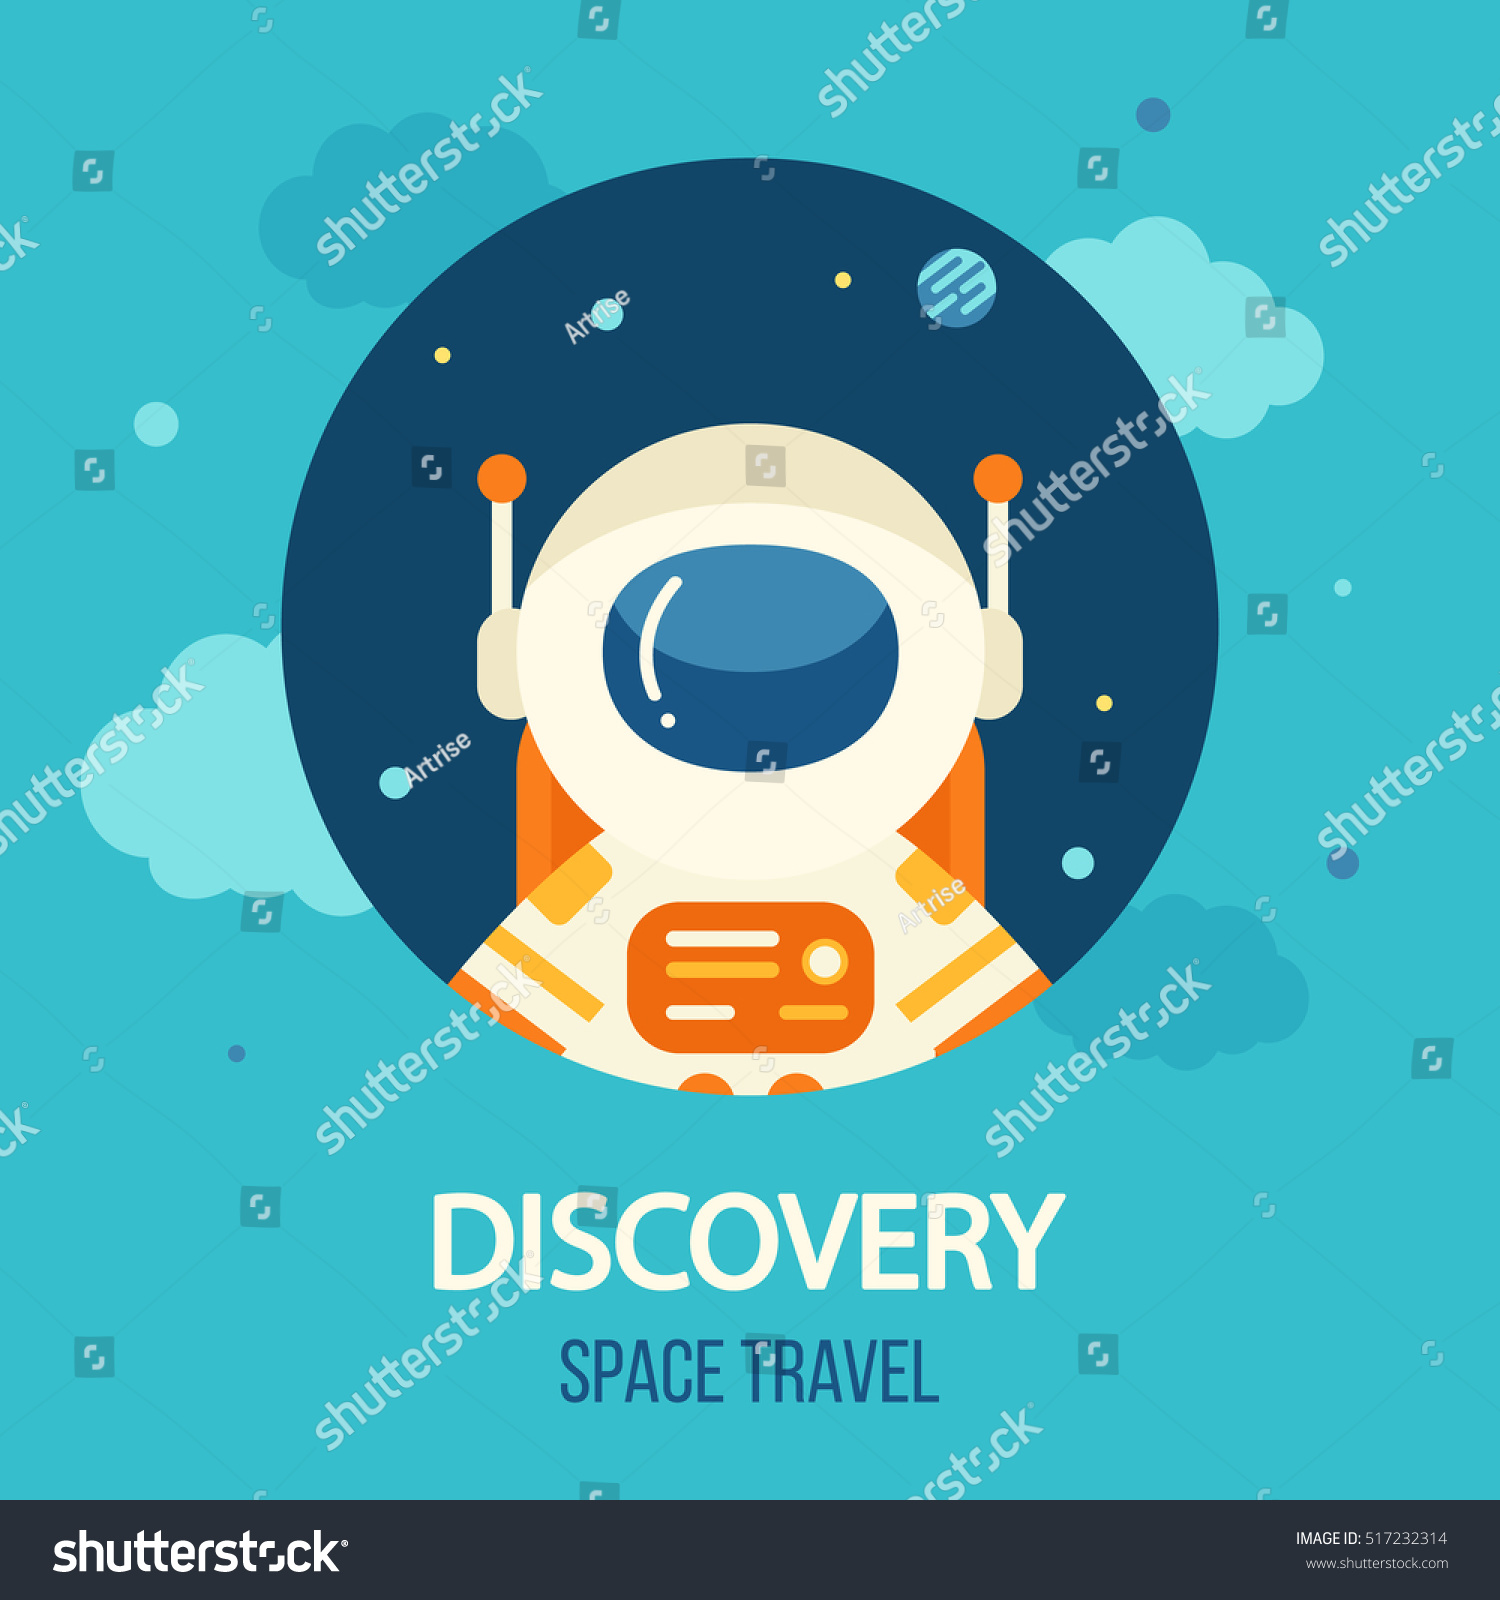 Cosmos discovery poster exploration travel theme stock for Outer space poster design